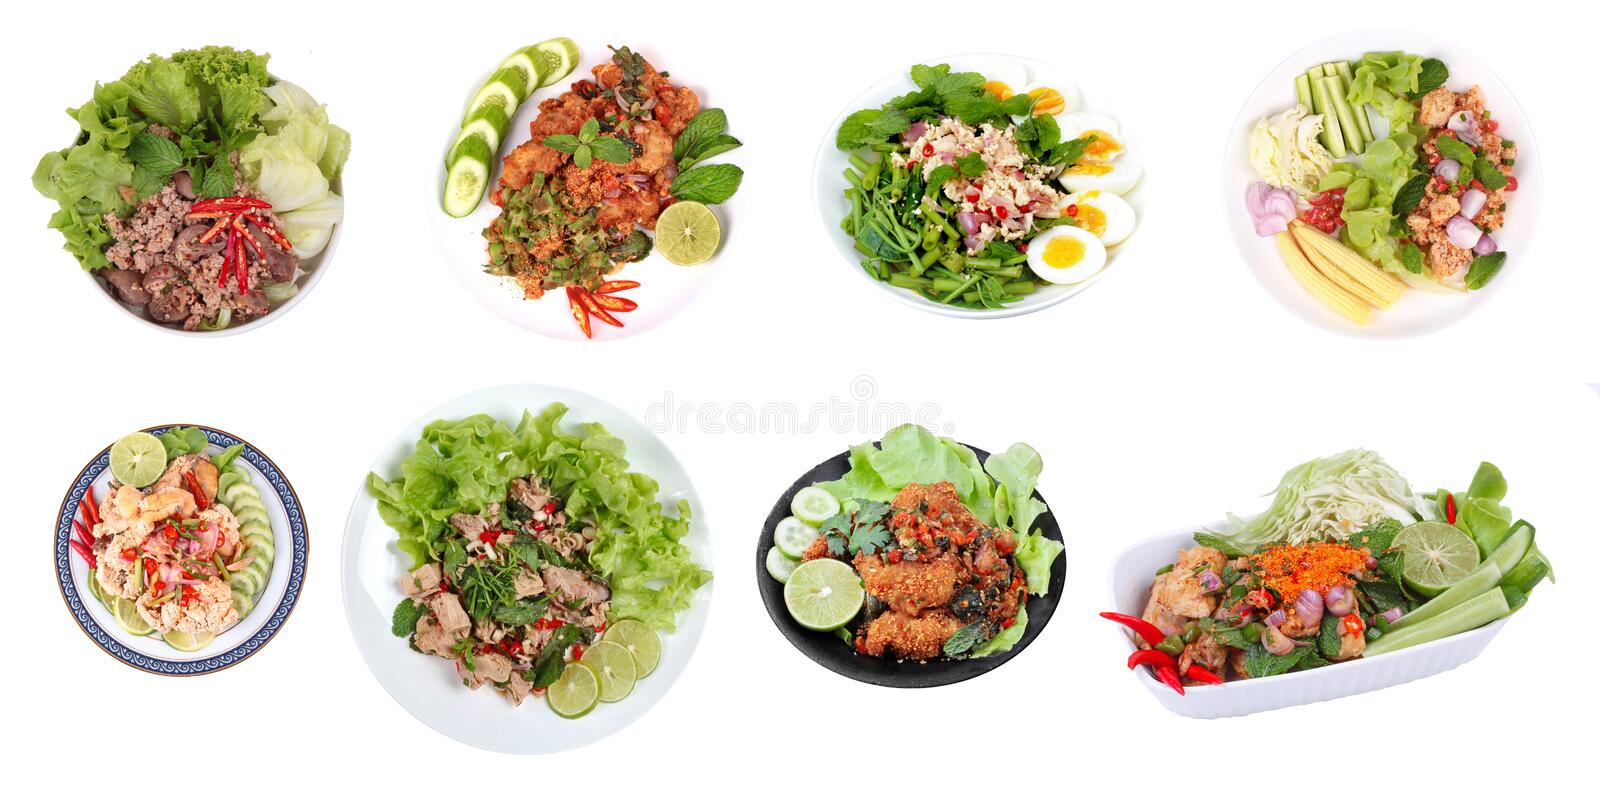 Spicy salad as ,Spicy and sour mixed herb salad with minced pork. Thailand best of spicy salad as ,Spicy and sour mixed herb salad with minced pork, deep-fried royalty free stock image